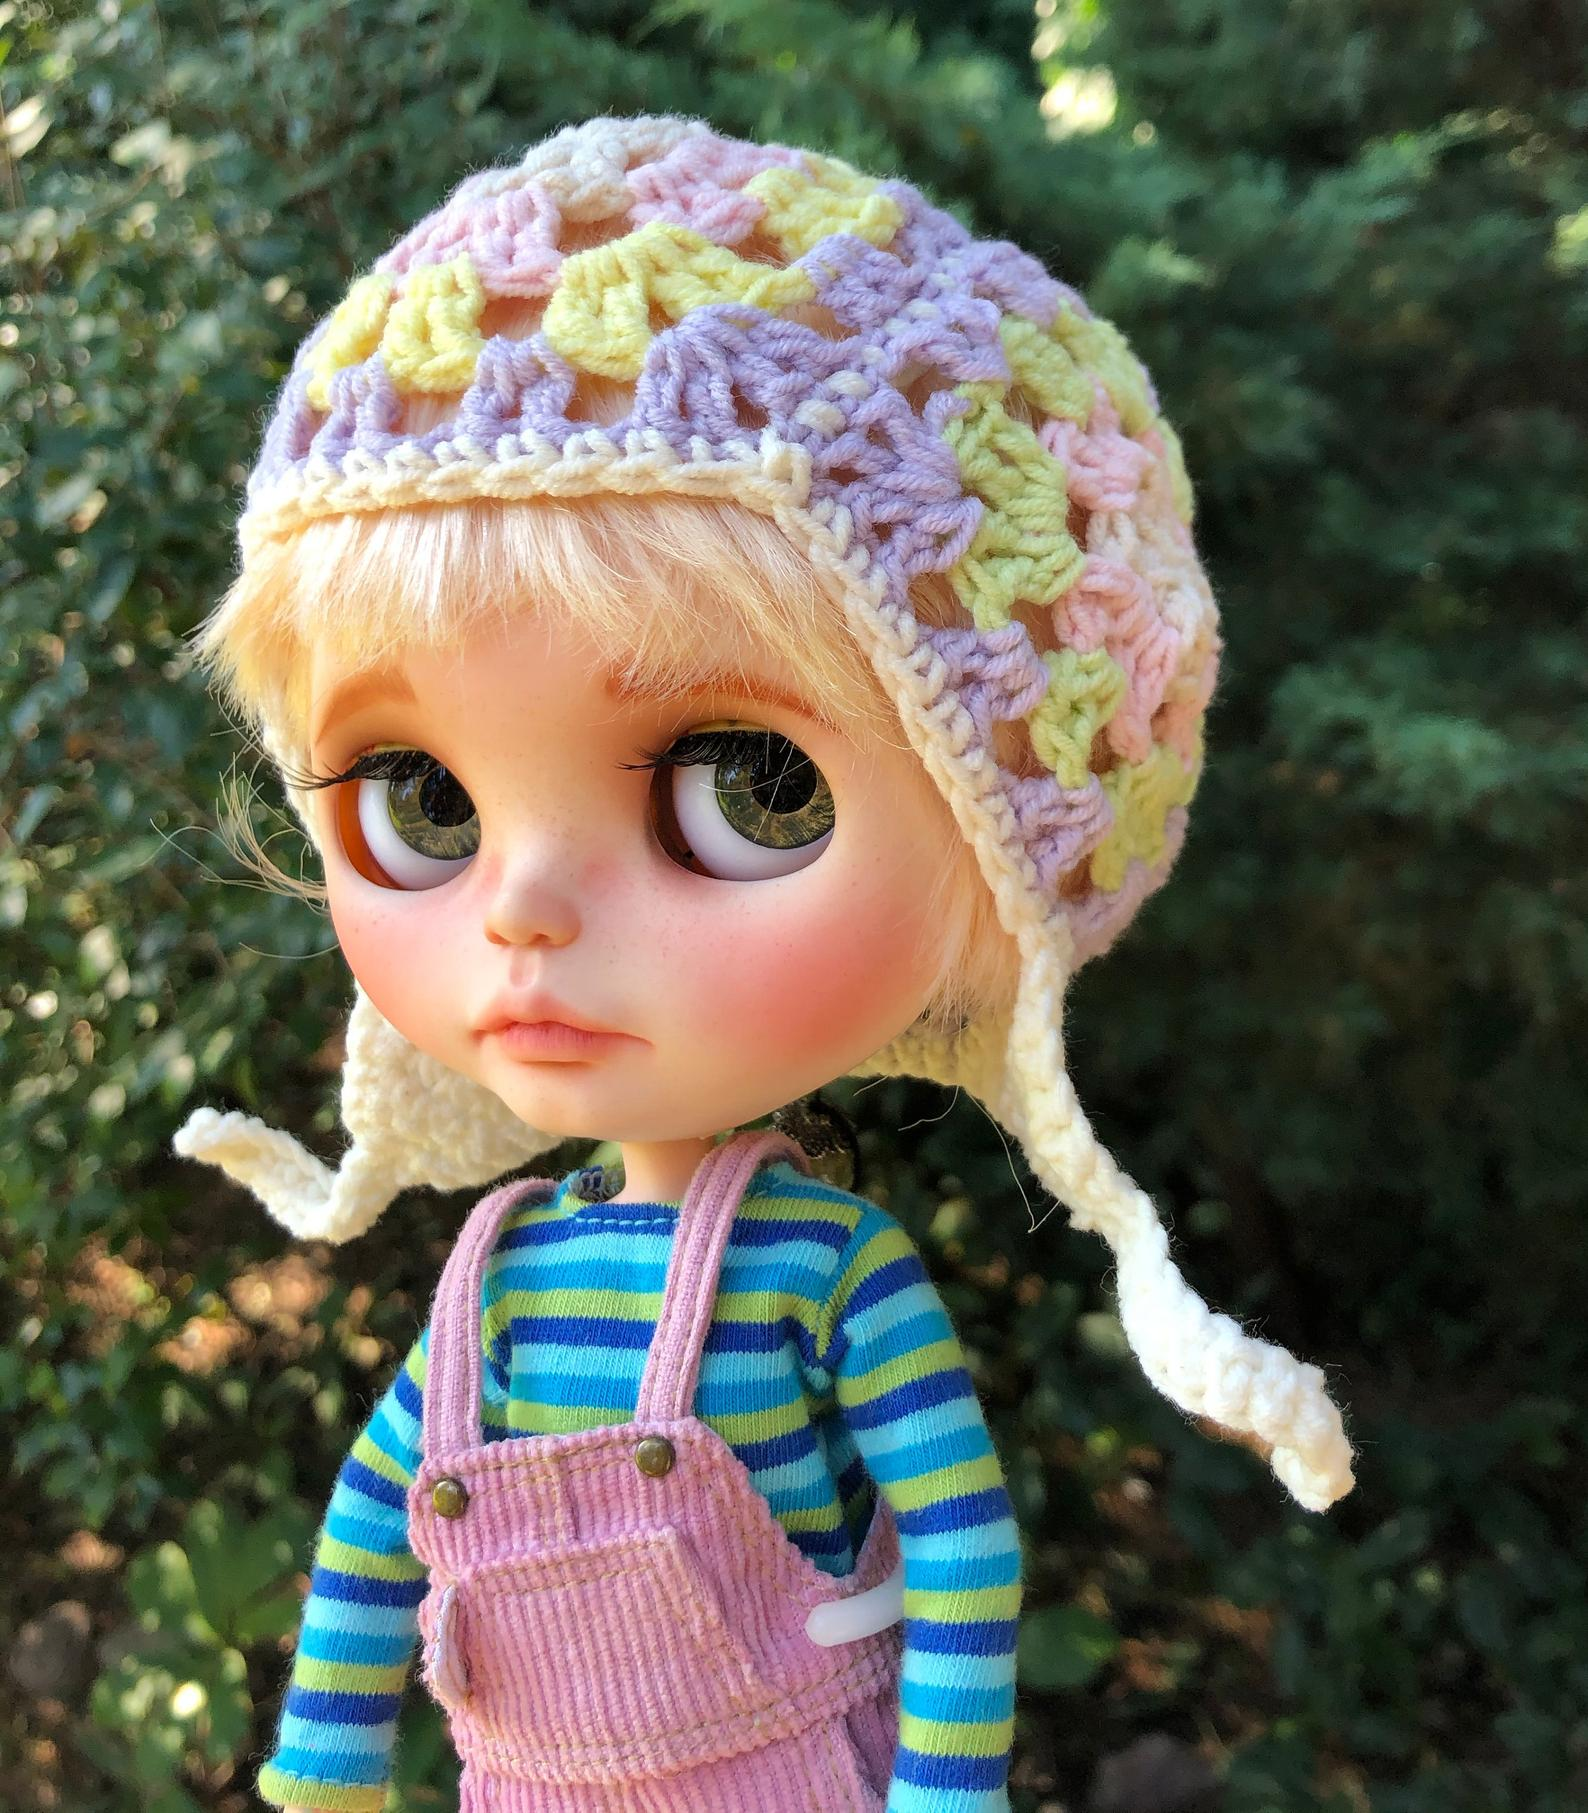 """<a href=""""https://www.etsy.com/pl/shop/iasio?ref=simple-shop-header-name&listing_id=851765508&section_id=13786899 """">Crochet Hat For Blythe Titus Pink Purple Green Light Pastel</a>"""